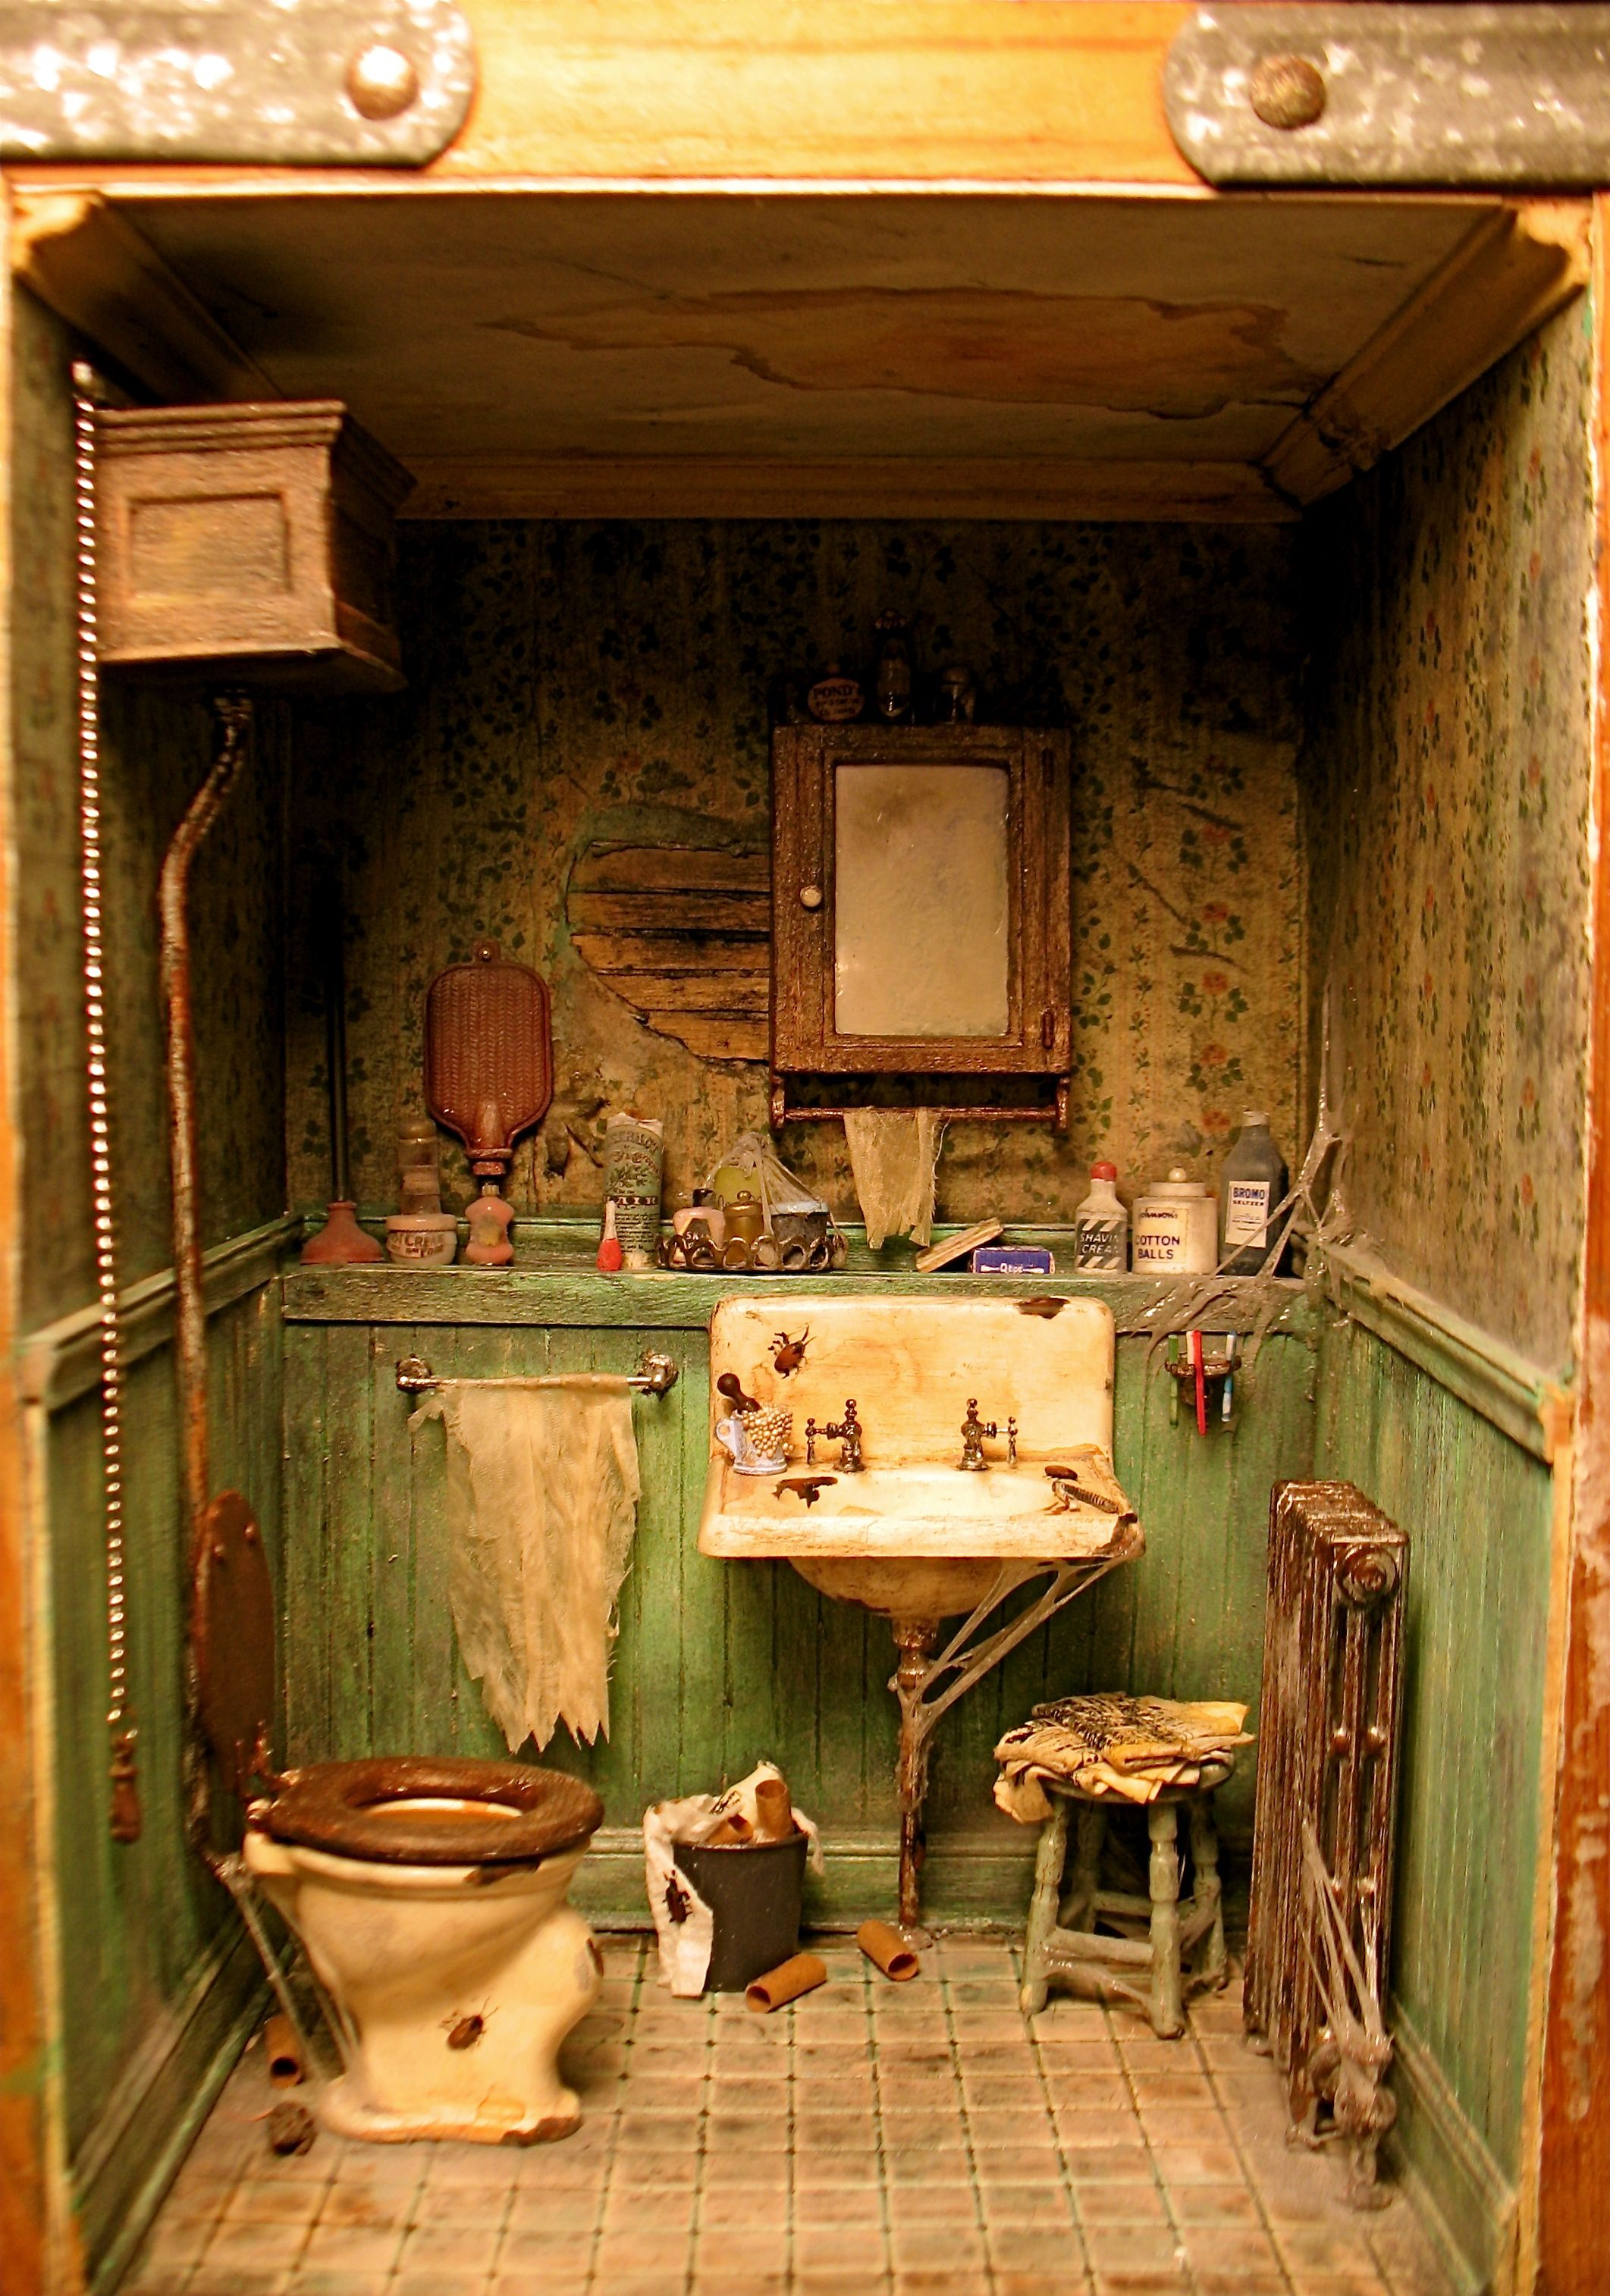 1:12 scale miniature grundgy bathroom by Patricia PauL...Haha! The only thing more fun than a pretty little miniature room is a dirty dindgy one #miniaturerooms